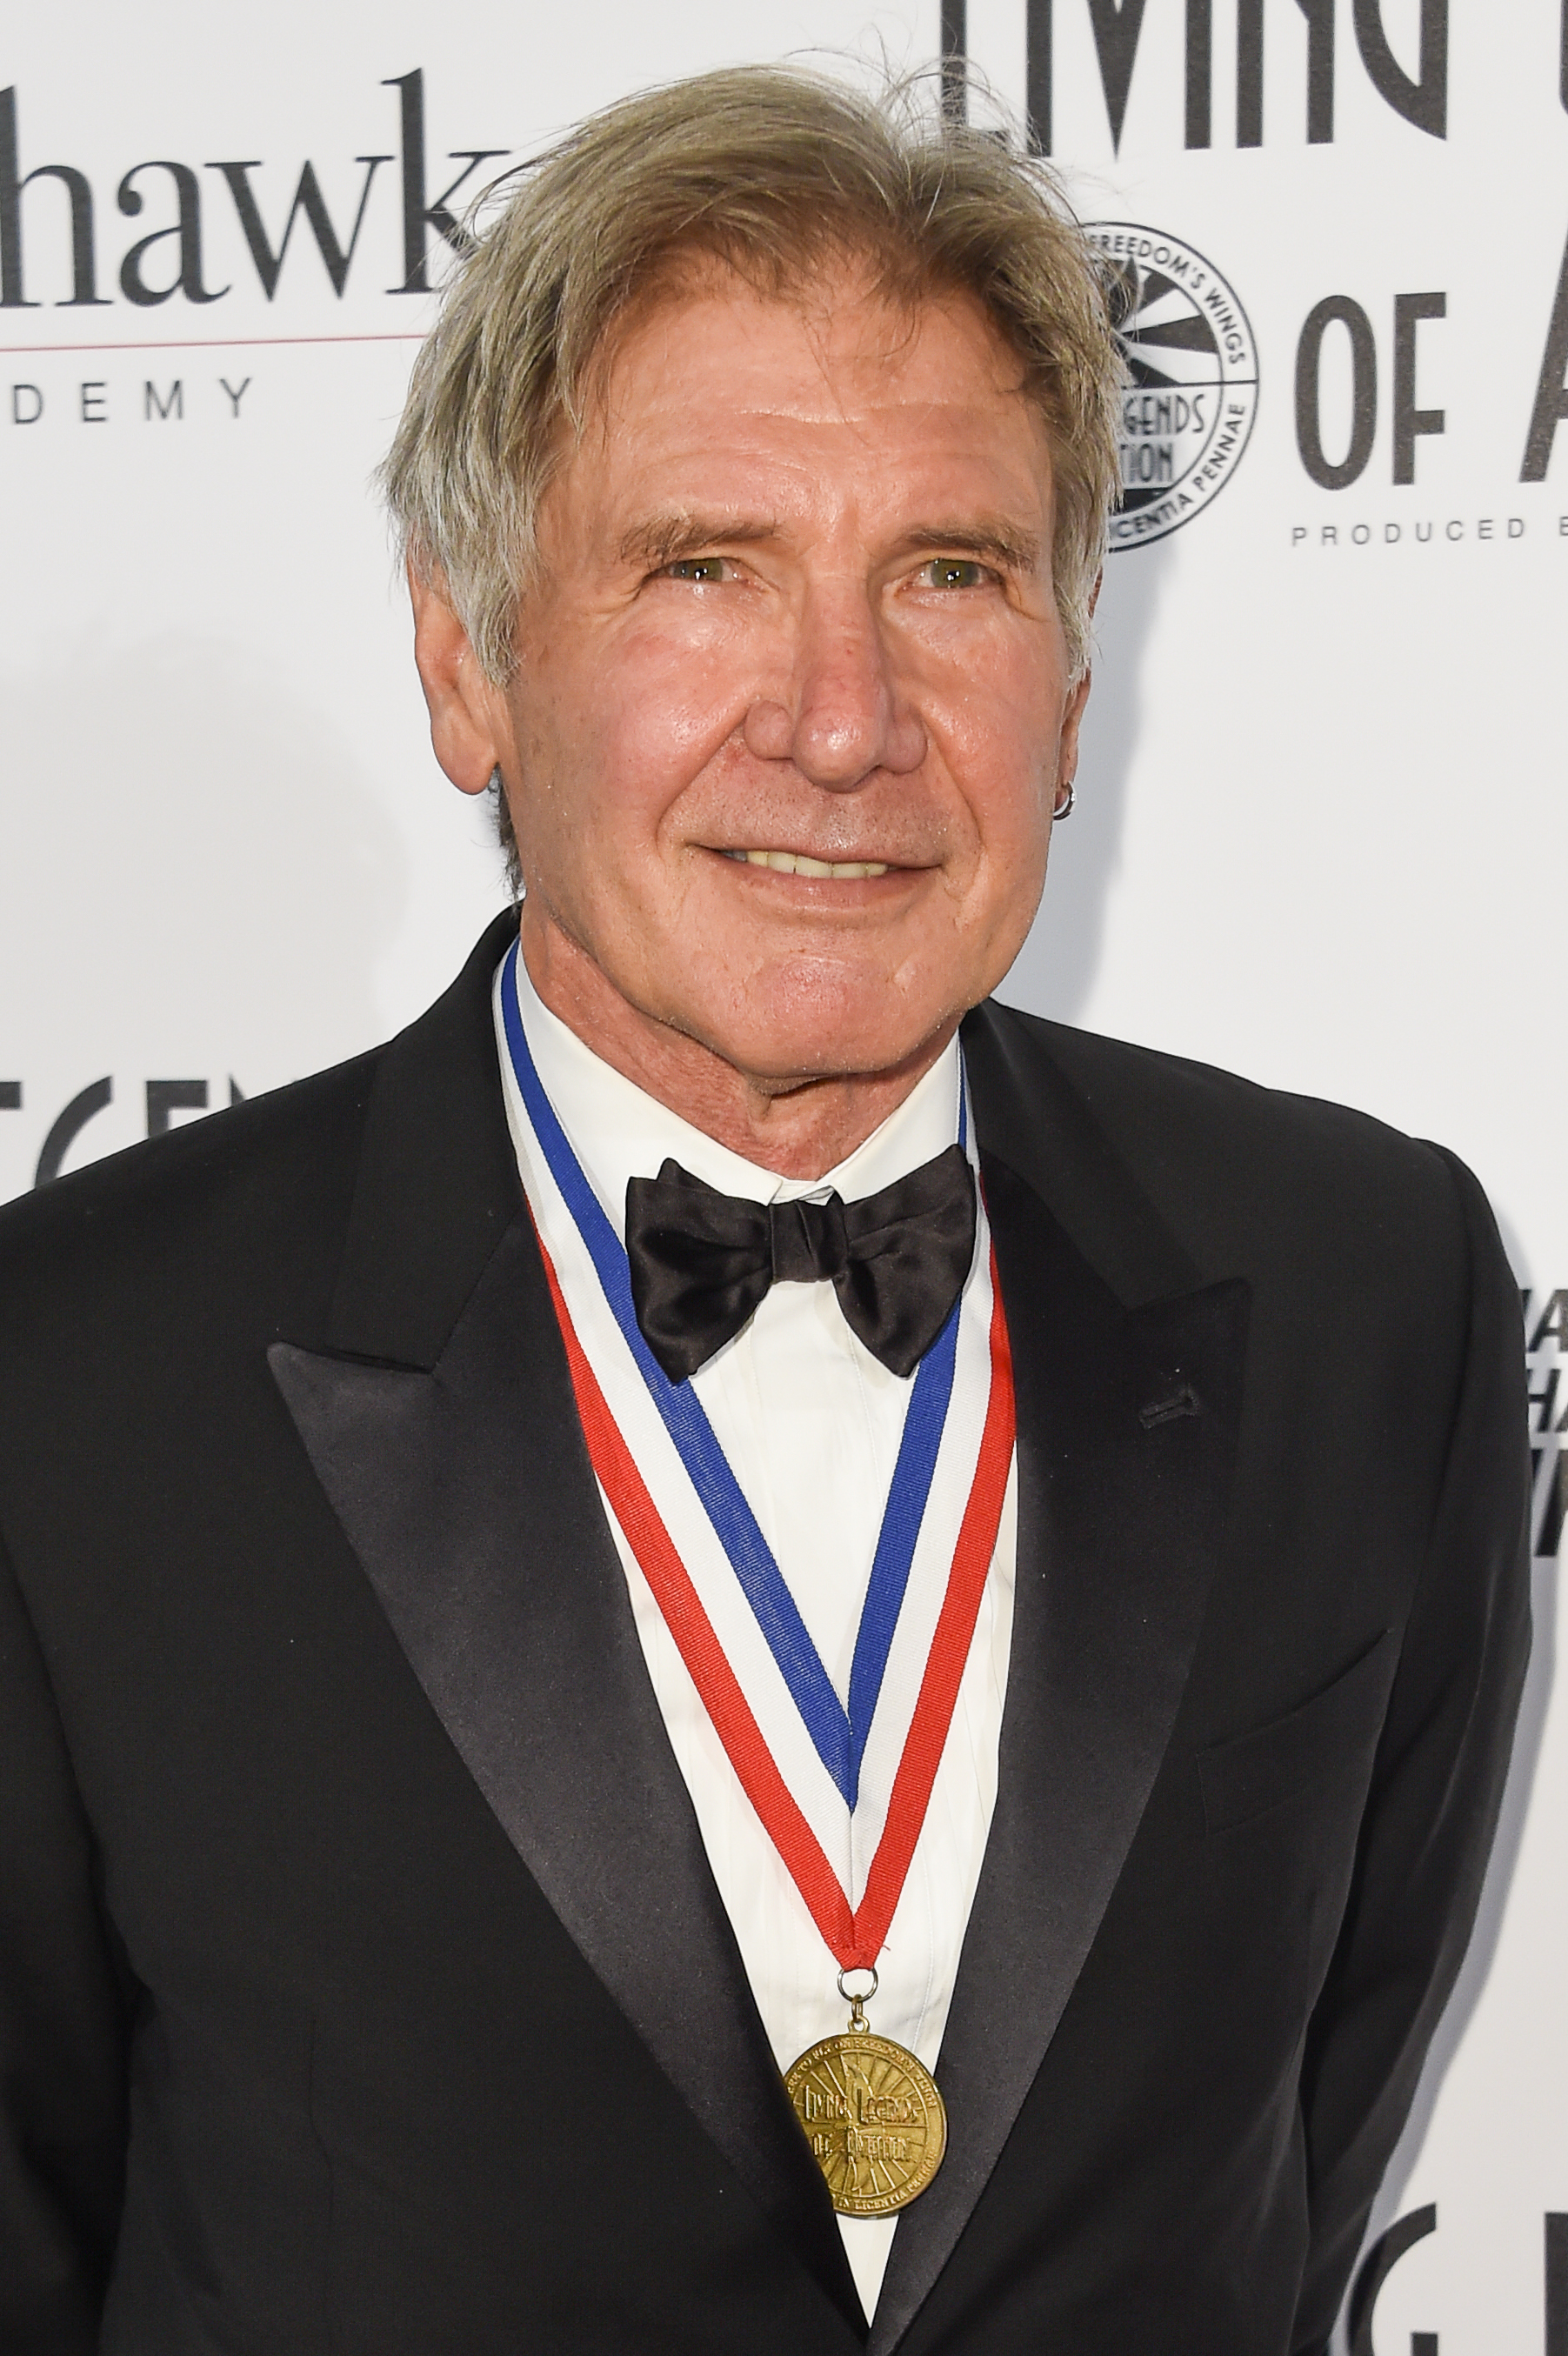 Harrison Ford attends the 12th Annual Living Legends of Aviation Awards in Los Angeles on Jan. 16, 2015.